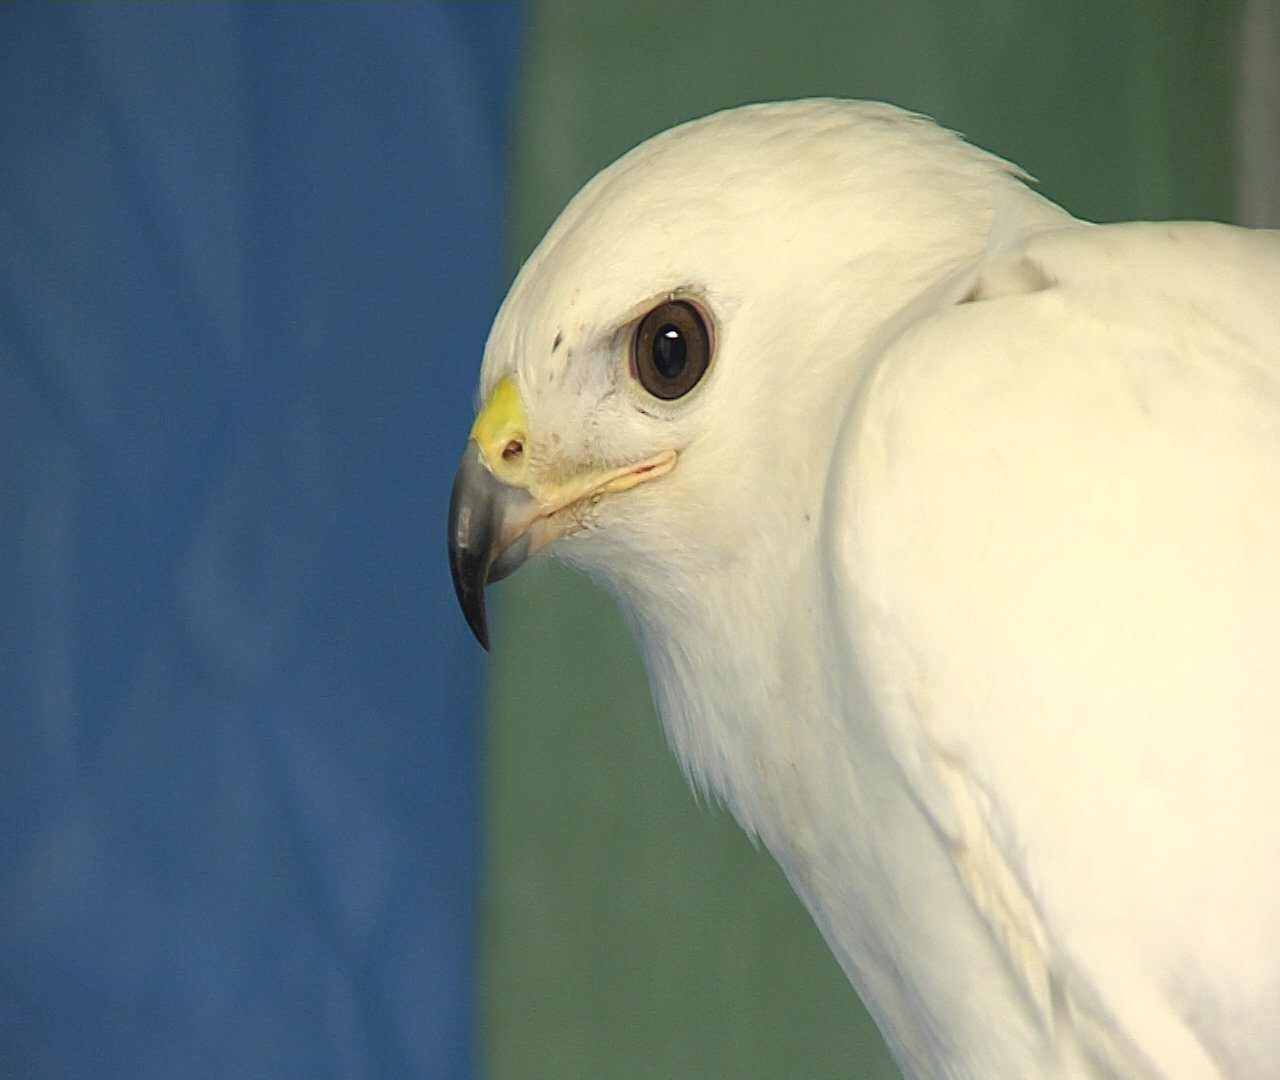 Fairway Auto Center >> Rare White Hawk Recovering at Local Wildlife Center - Erie News Now | WICU and WSEE in Erie, PA